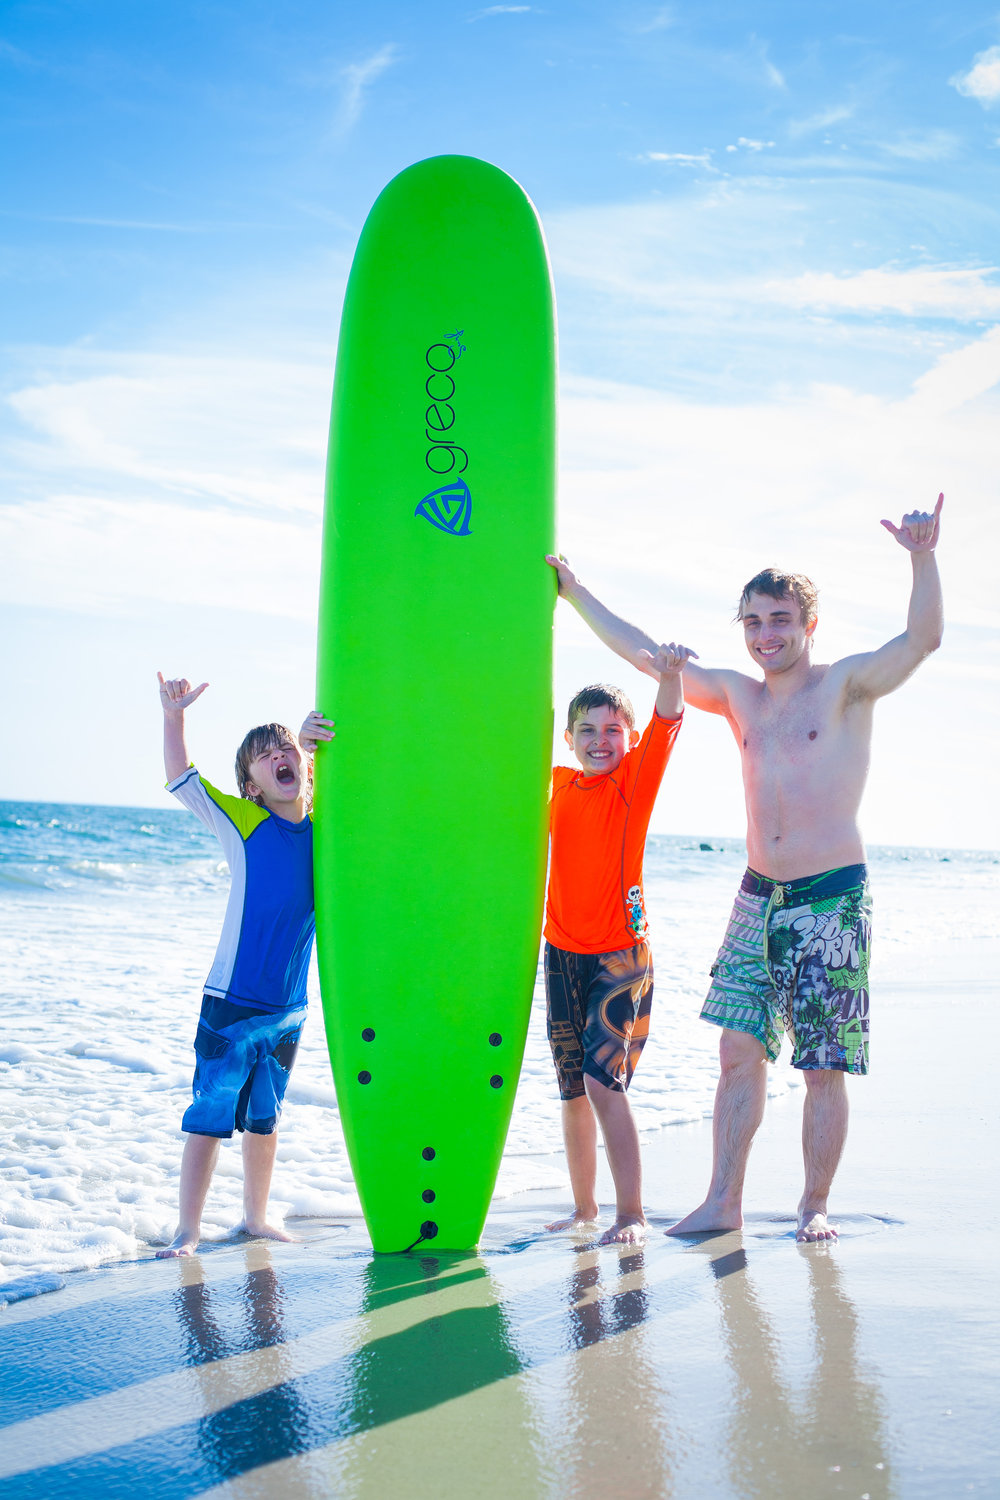 GROUP SURFING LESSONS -          FOR GROUPS OF 3 OR MORE PEOPLE, WE OFFER A GROUP RATE OF $45 PER PERSON (1-HOUR) OR $75 PER PERSON (2-HOURS). CALL US AT (516) 996-4100 TO SET UP A GROUP LESSON!